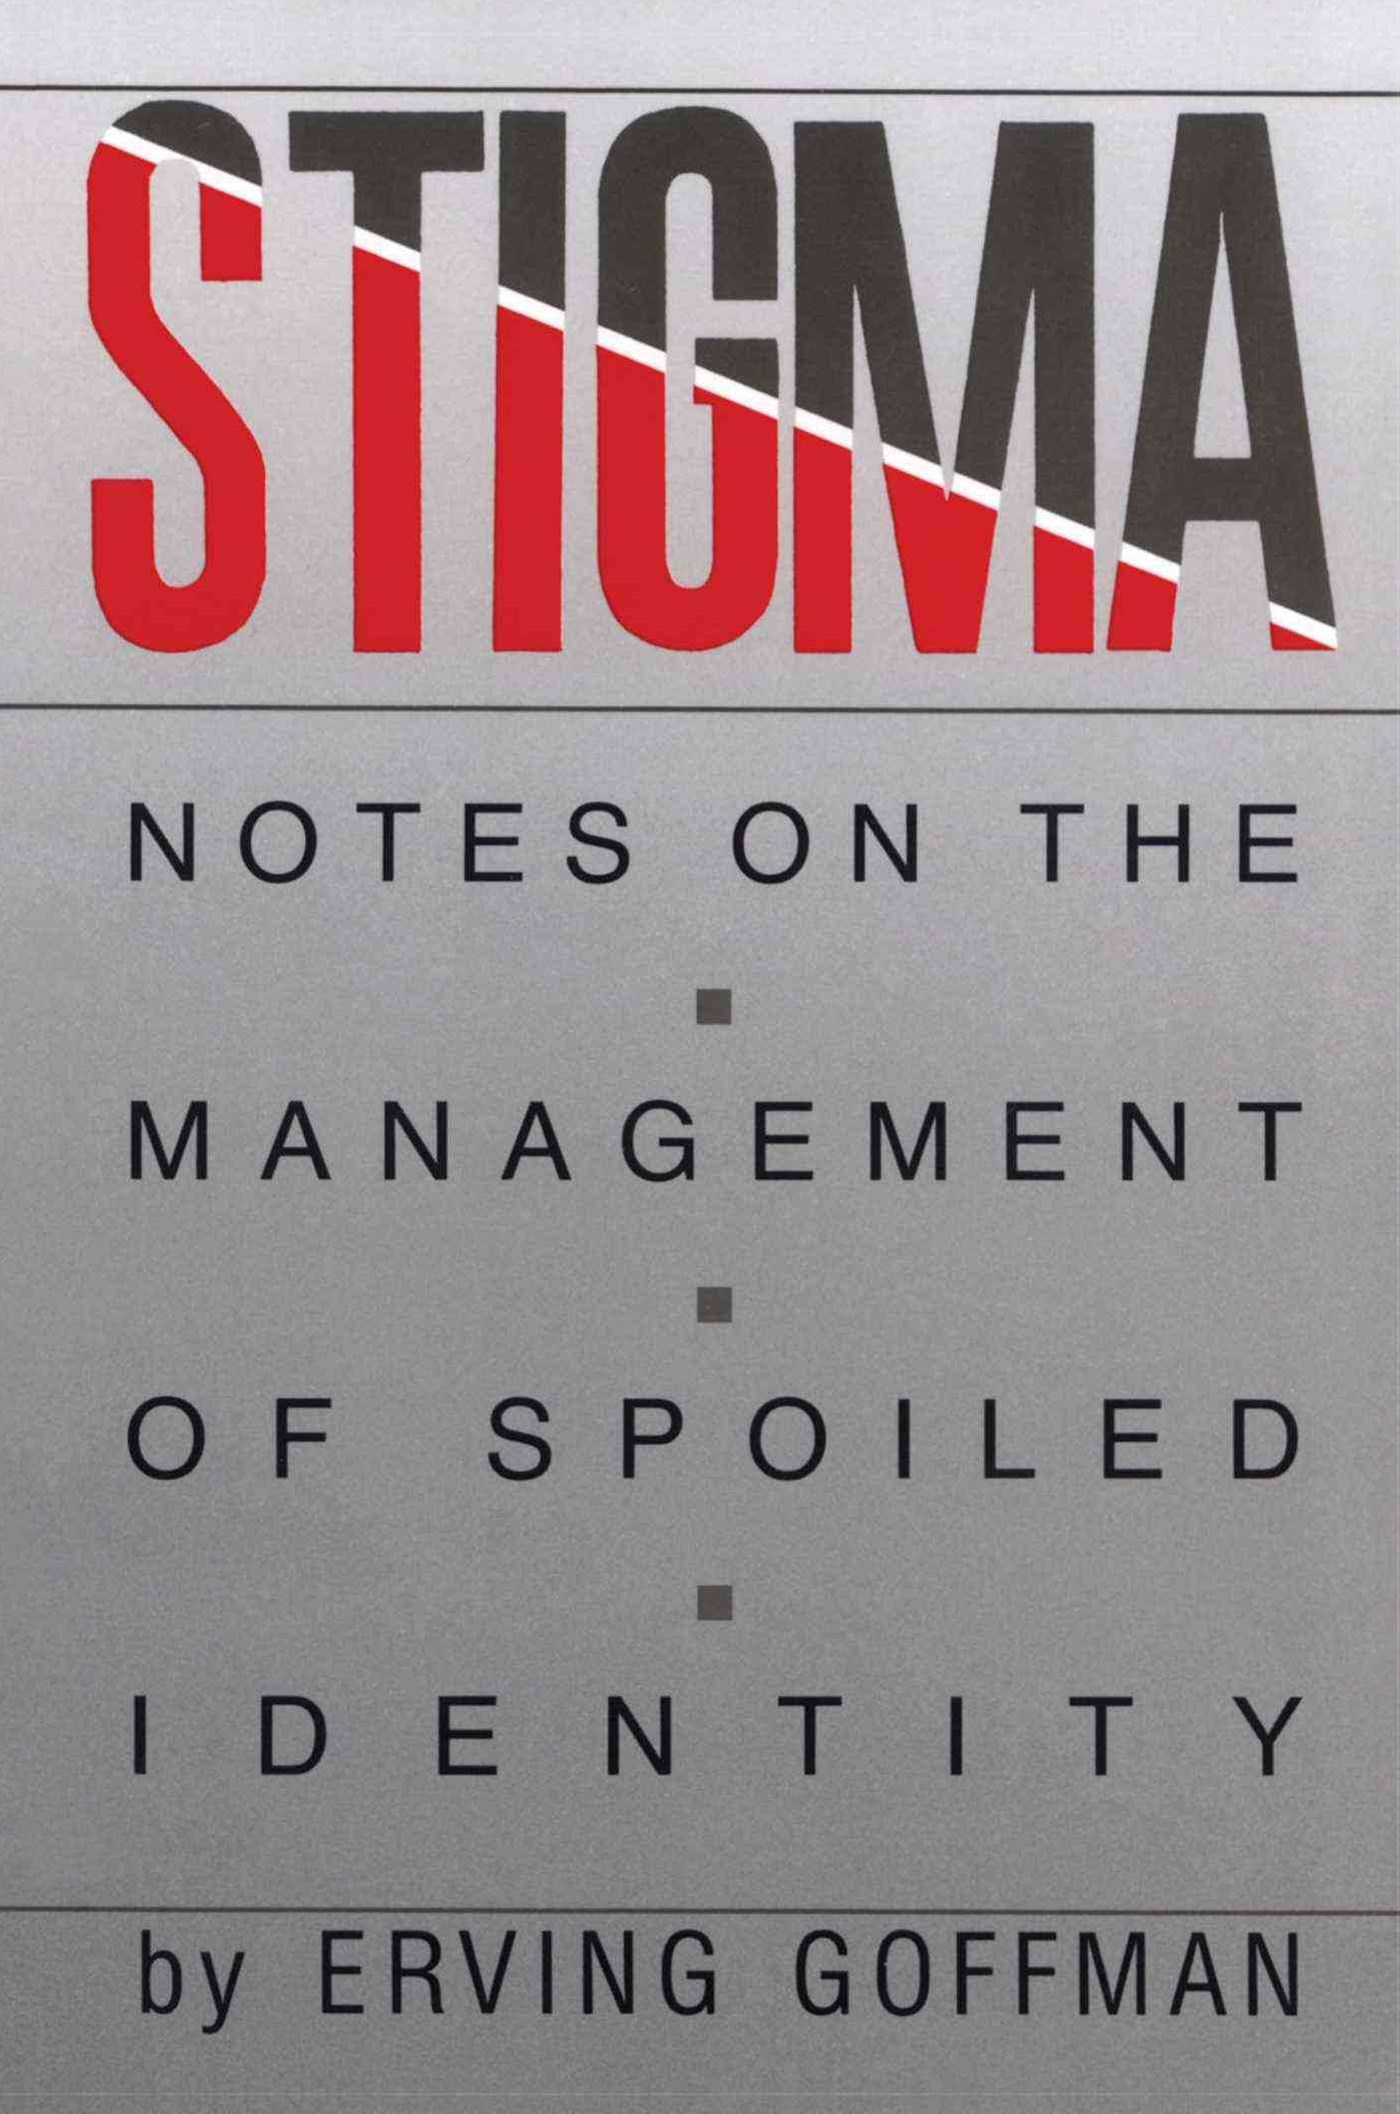 Stigma: Notes on the Management of Spolied Identity